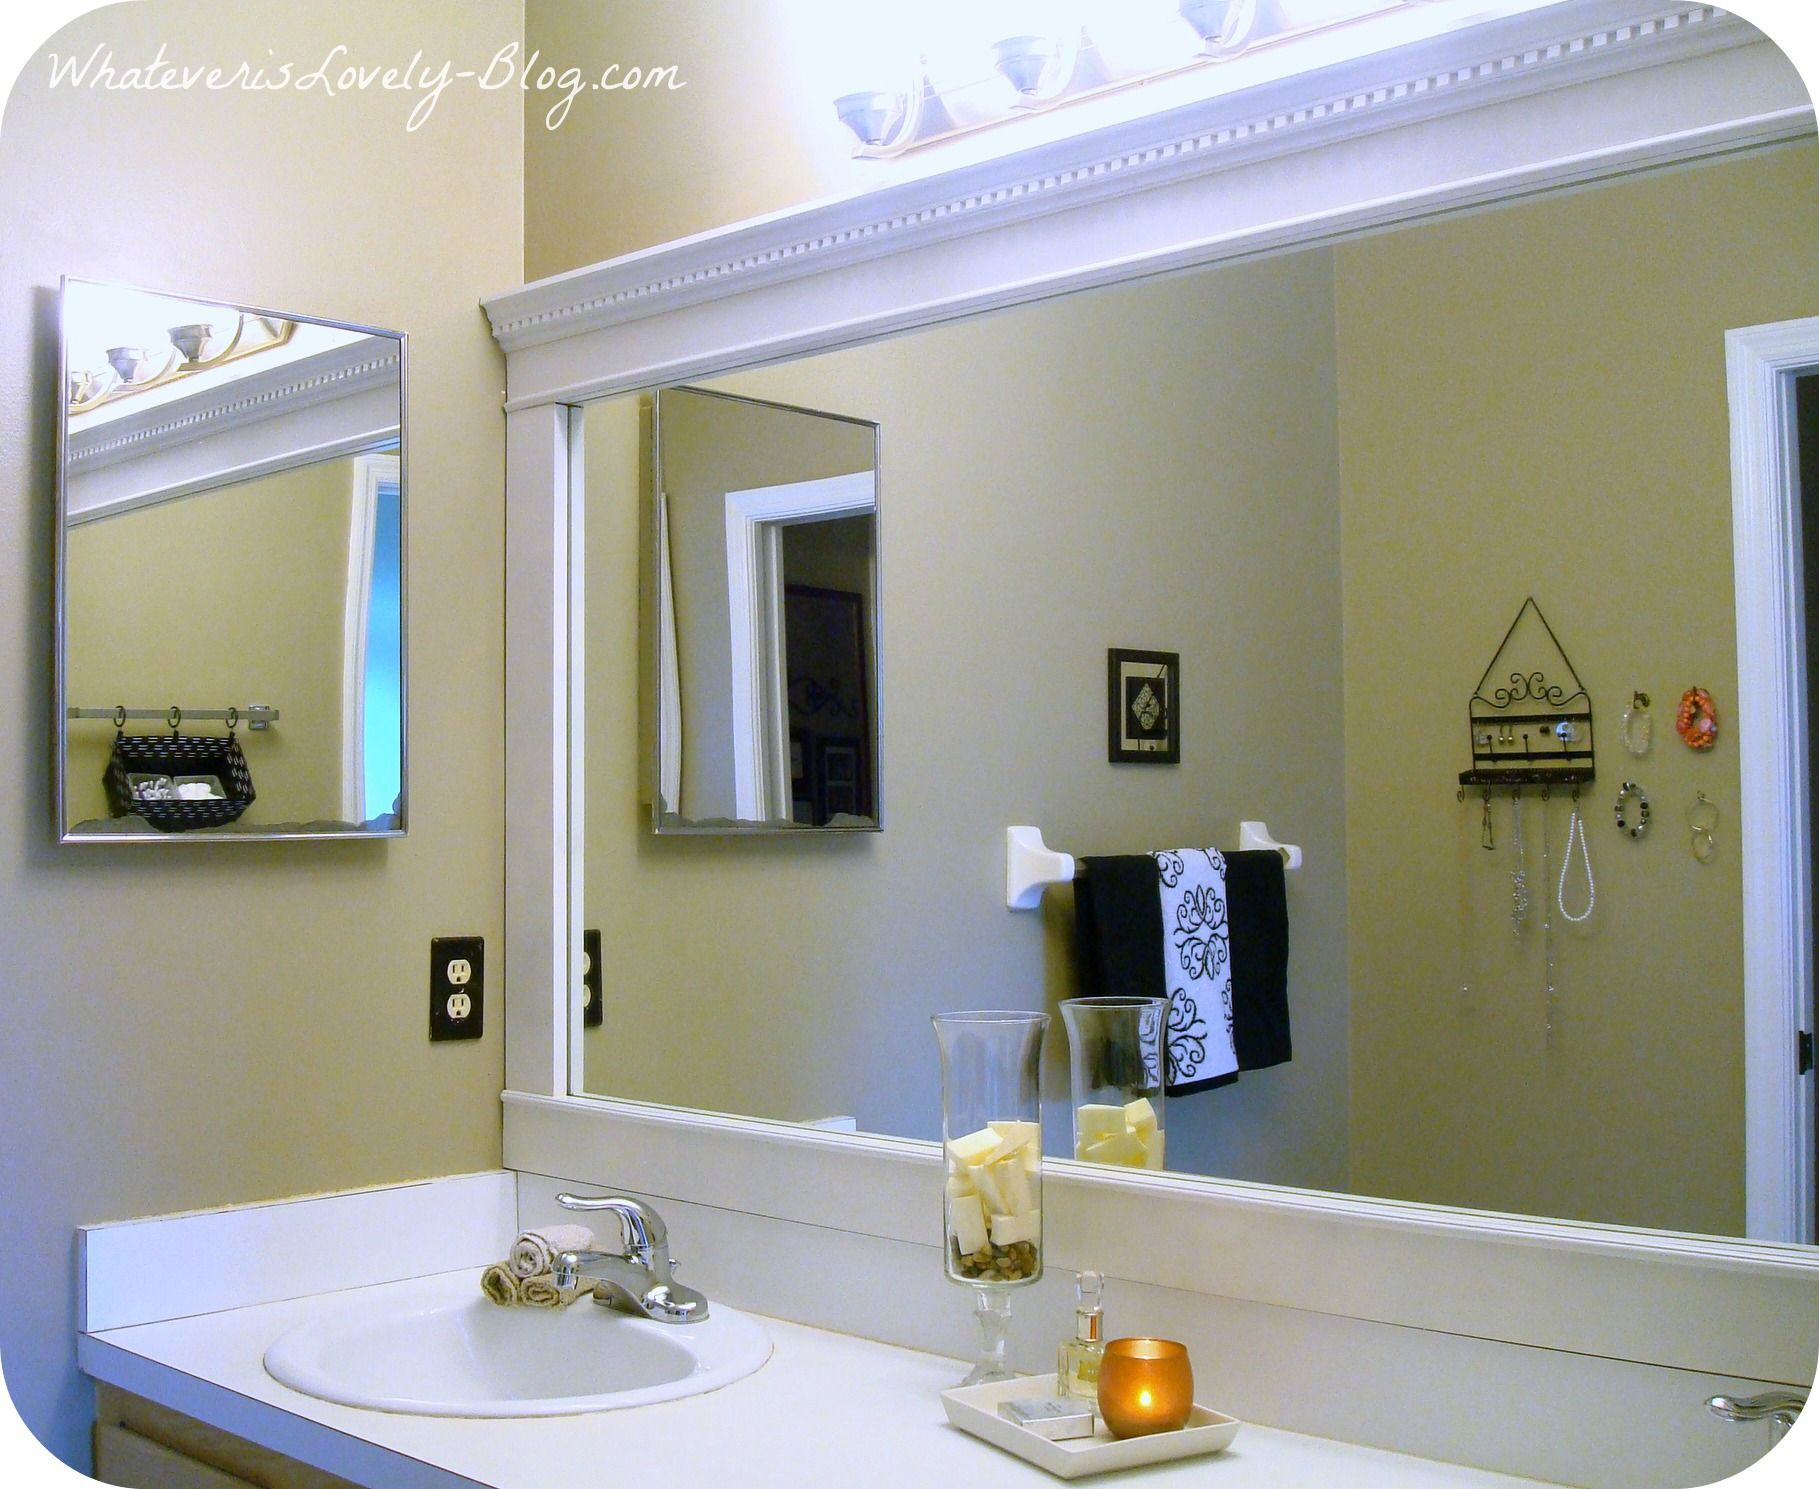 mirror to frame bathroom framed a reason why you shouldn t demolish old barn just yet